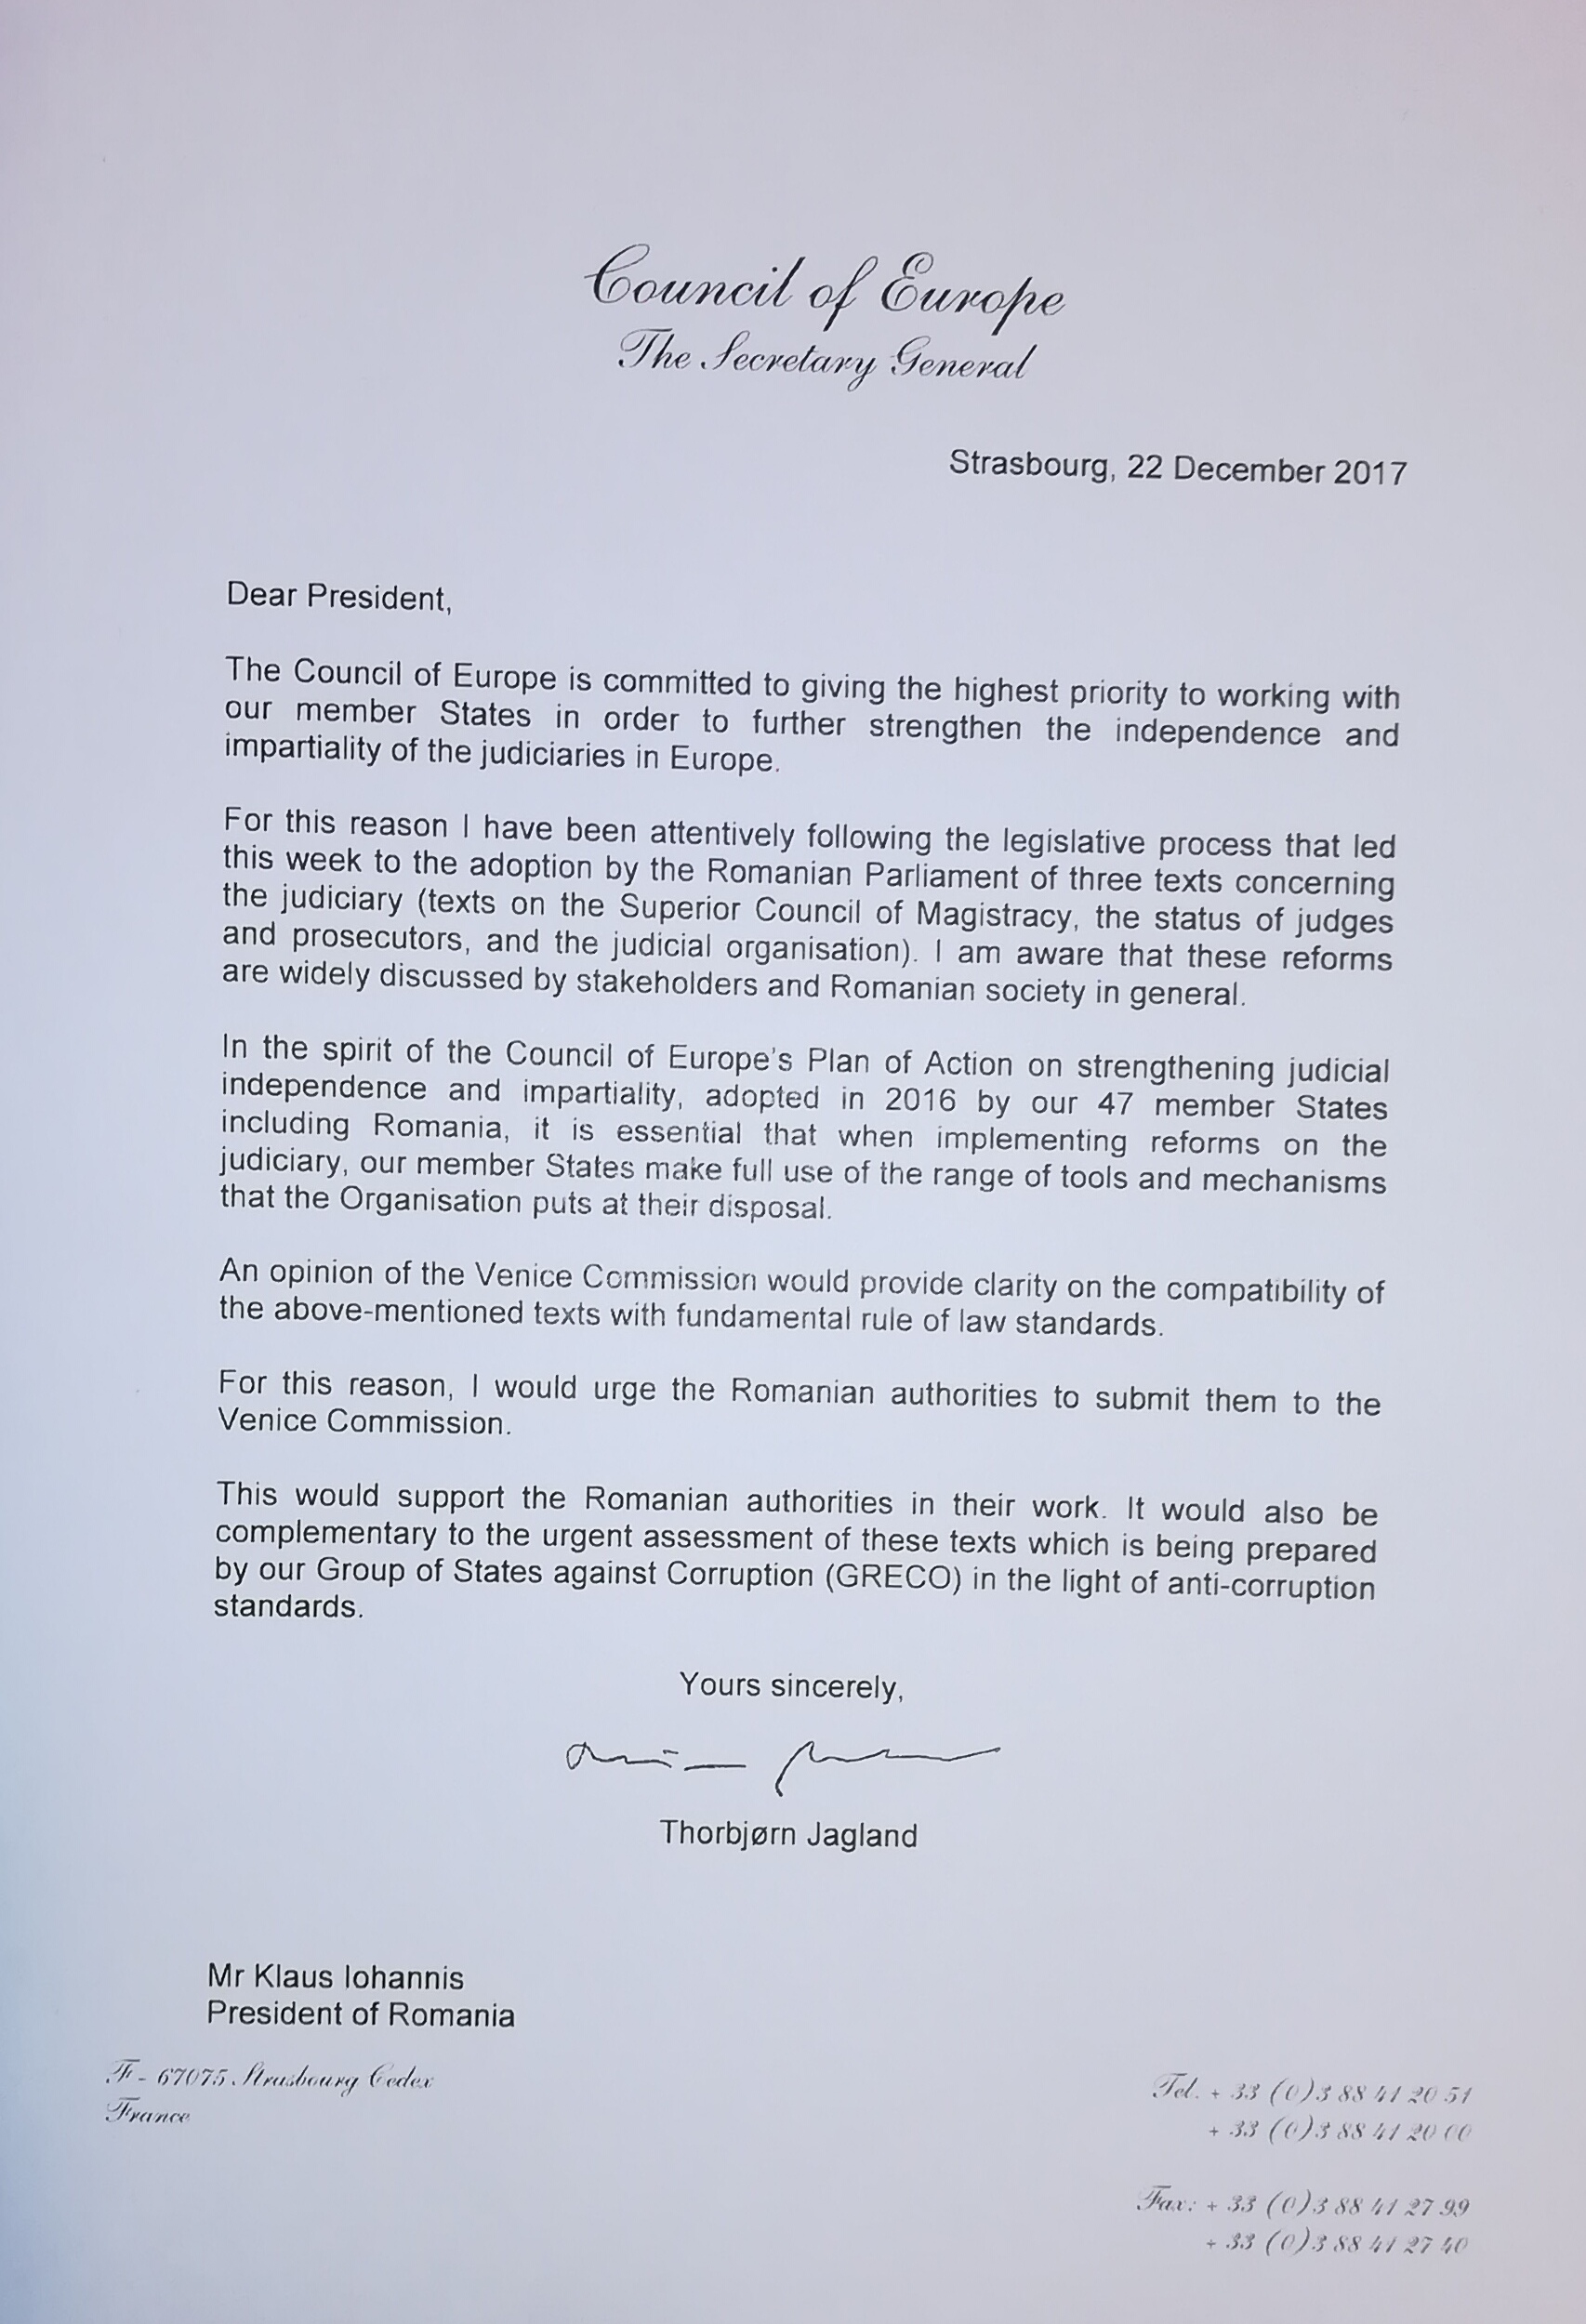 letter to the president of romania klaus iohannis